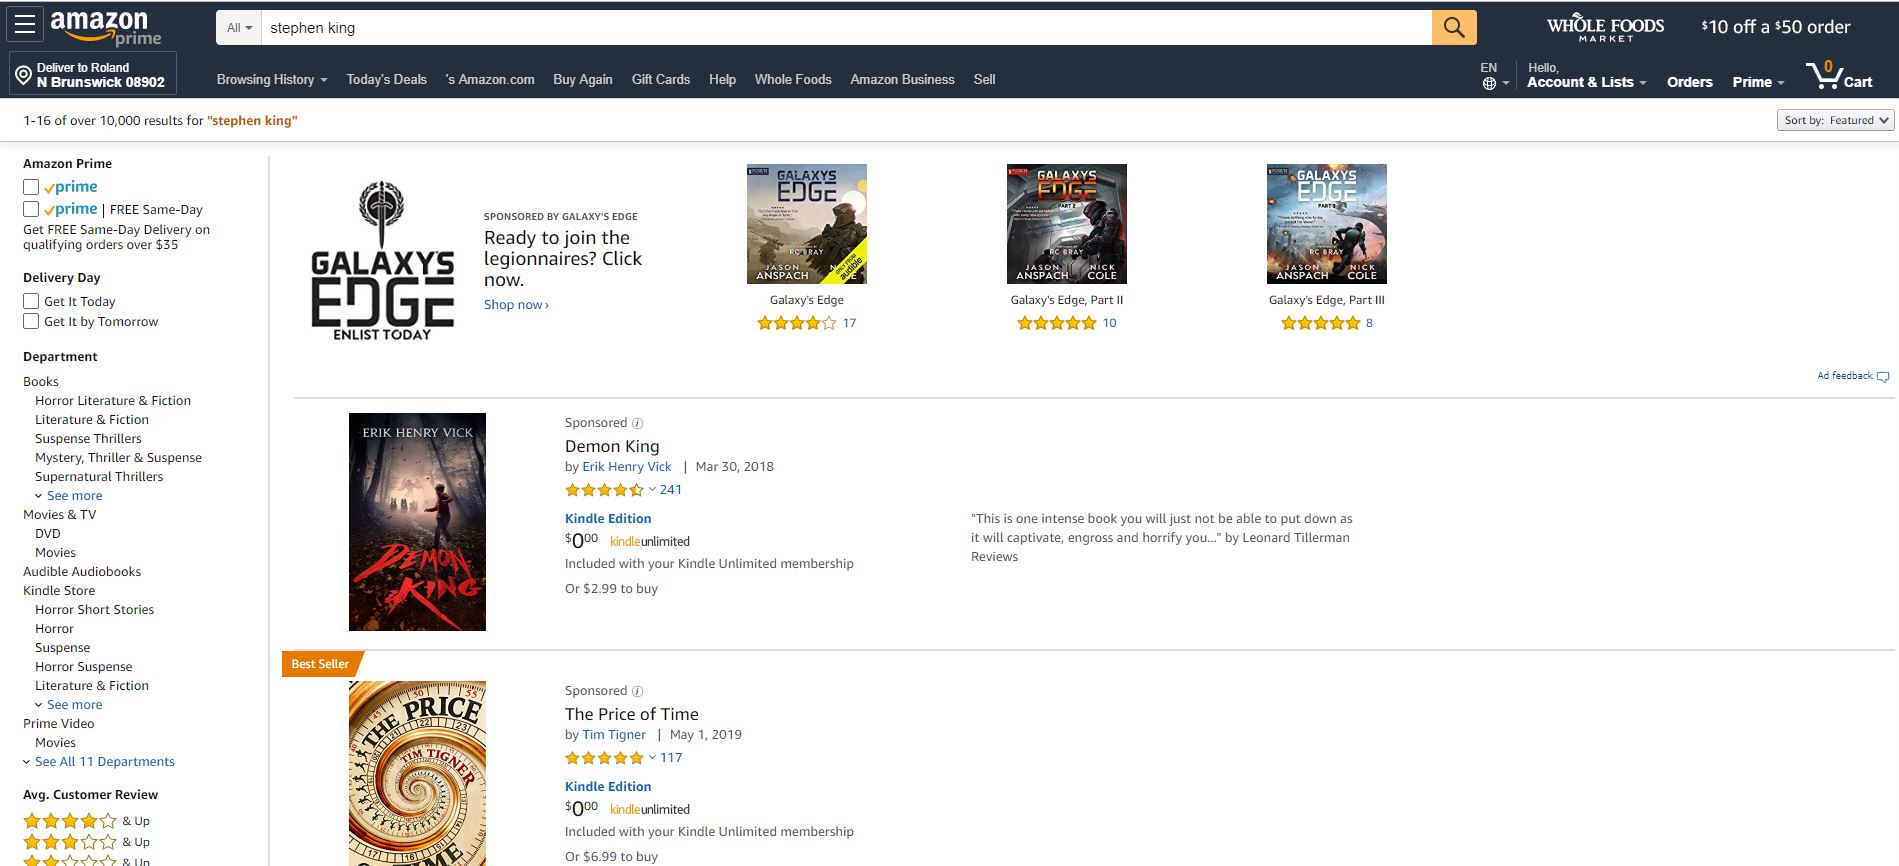 Amazon have obscured Stephen King's book in preference of Sponsored content.